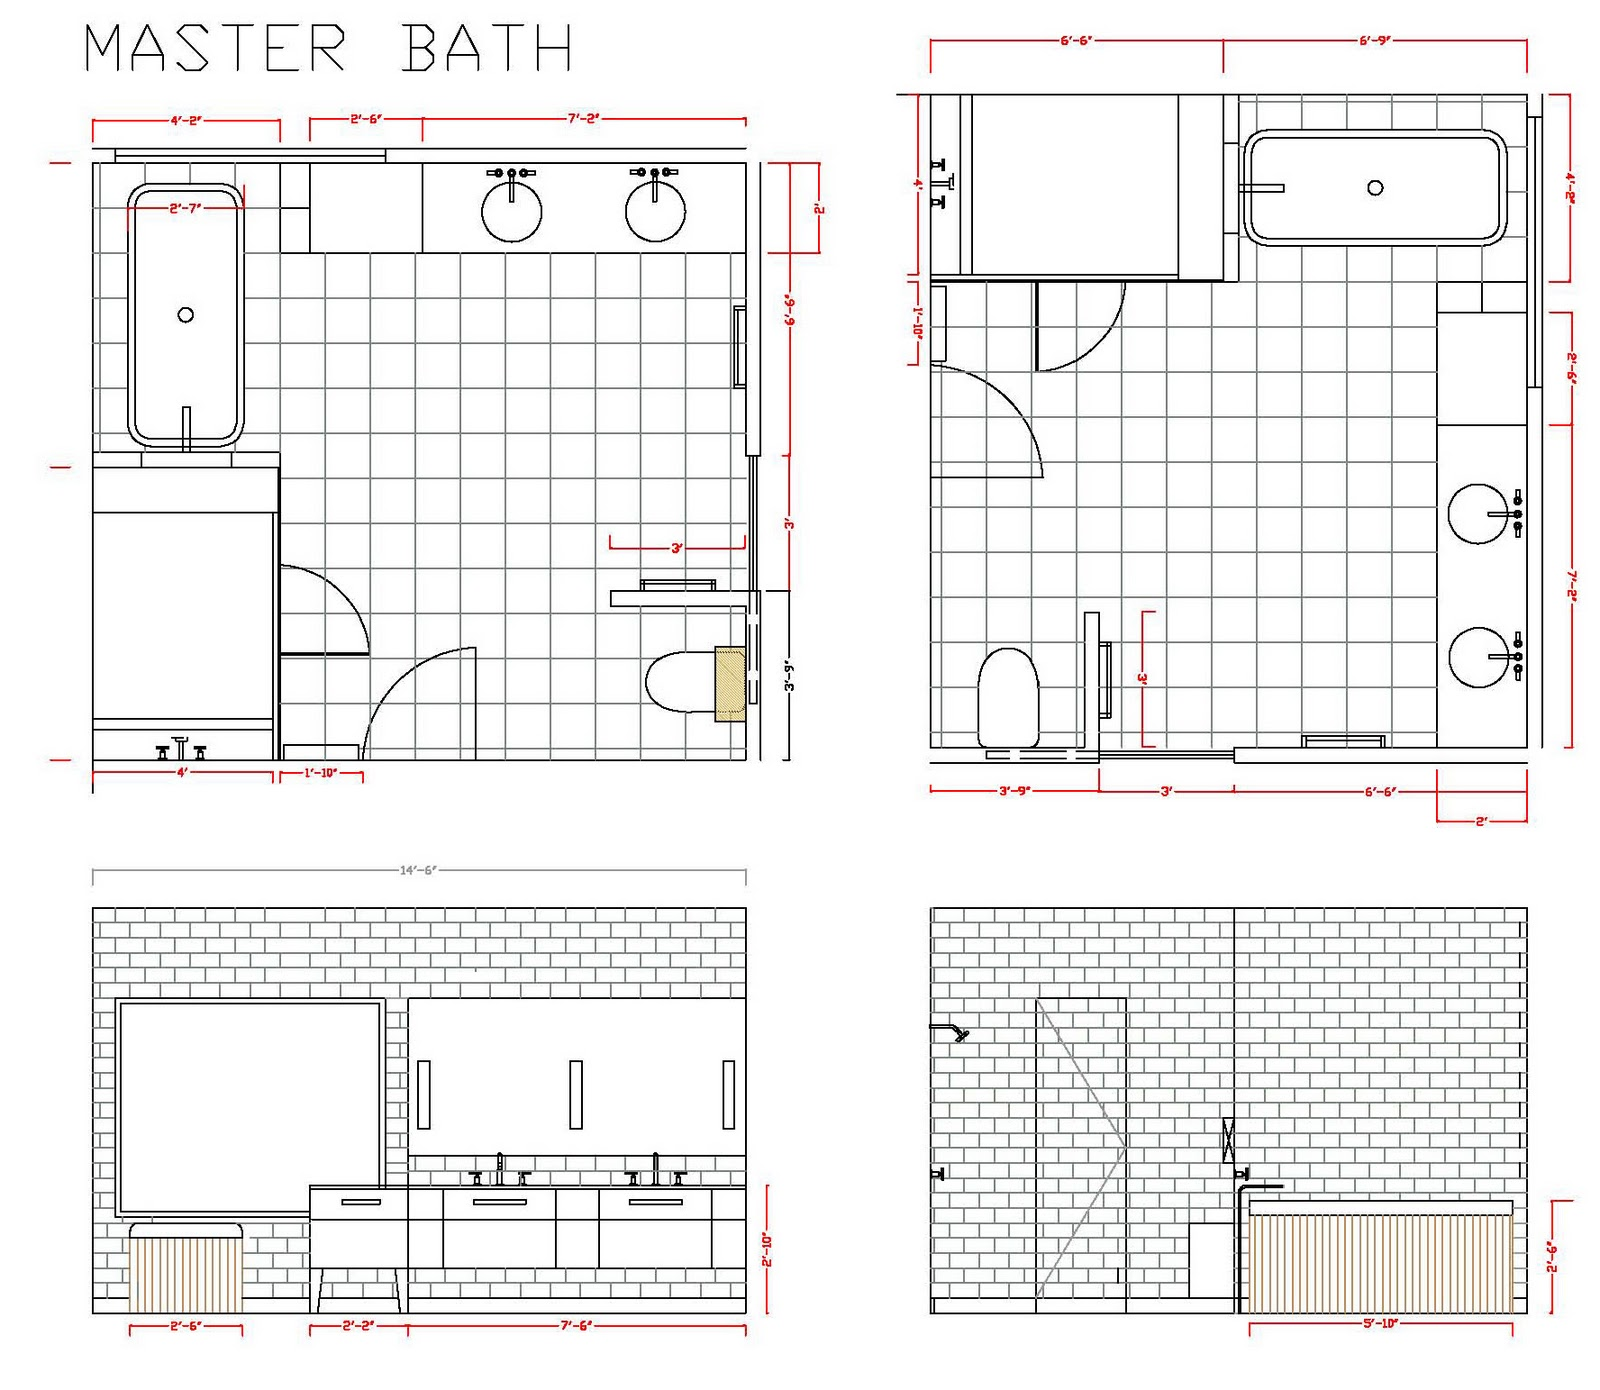 Bathroom drawing for kids - Here We Have Done Cad Renderings For A Master Bathroom And Kids Bathrooms In A Long Island Home Recently Reconstructed By Betty Wasserman Art Interiors